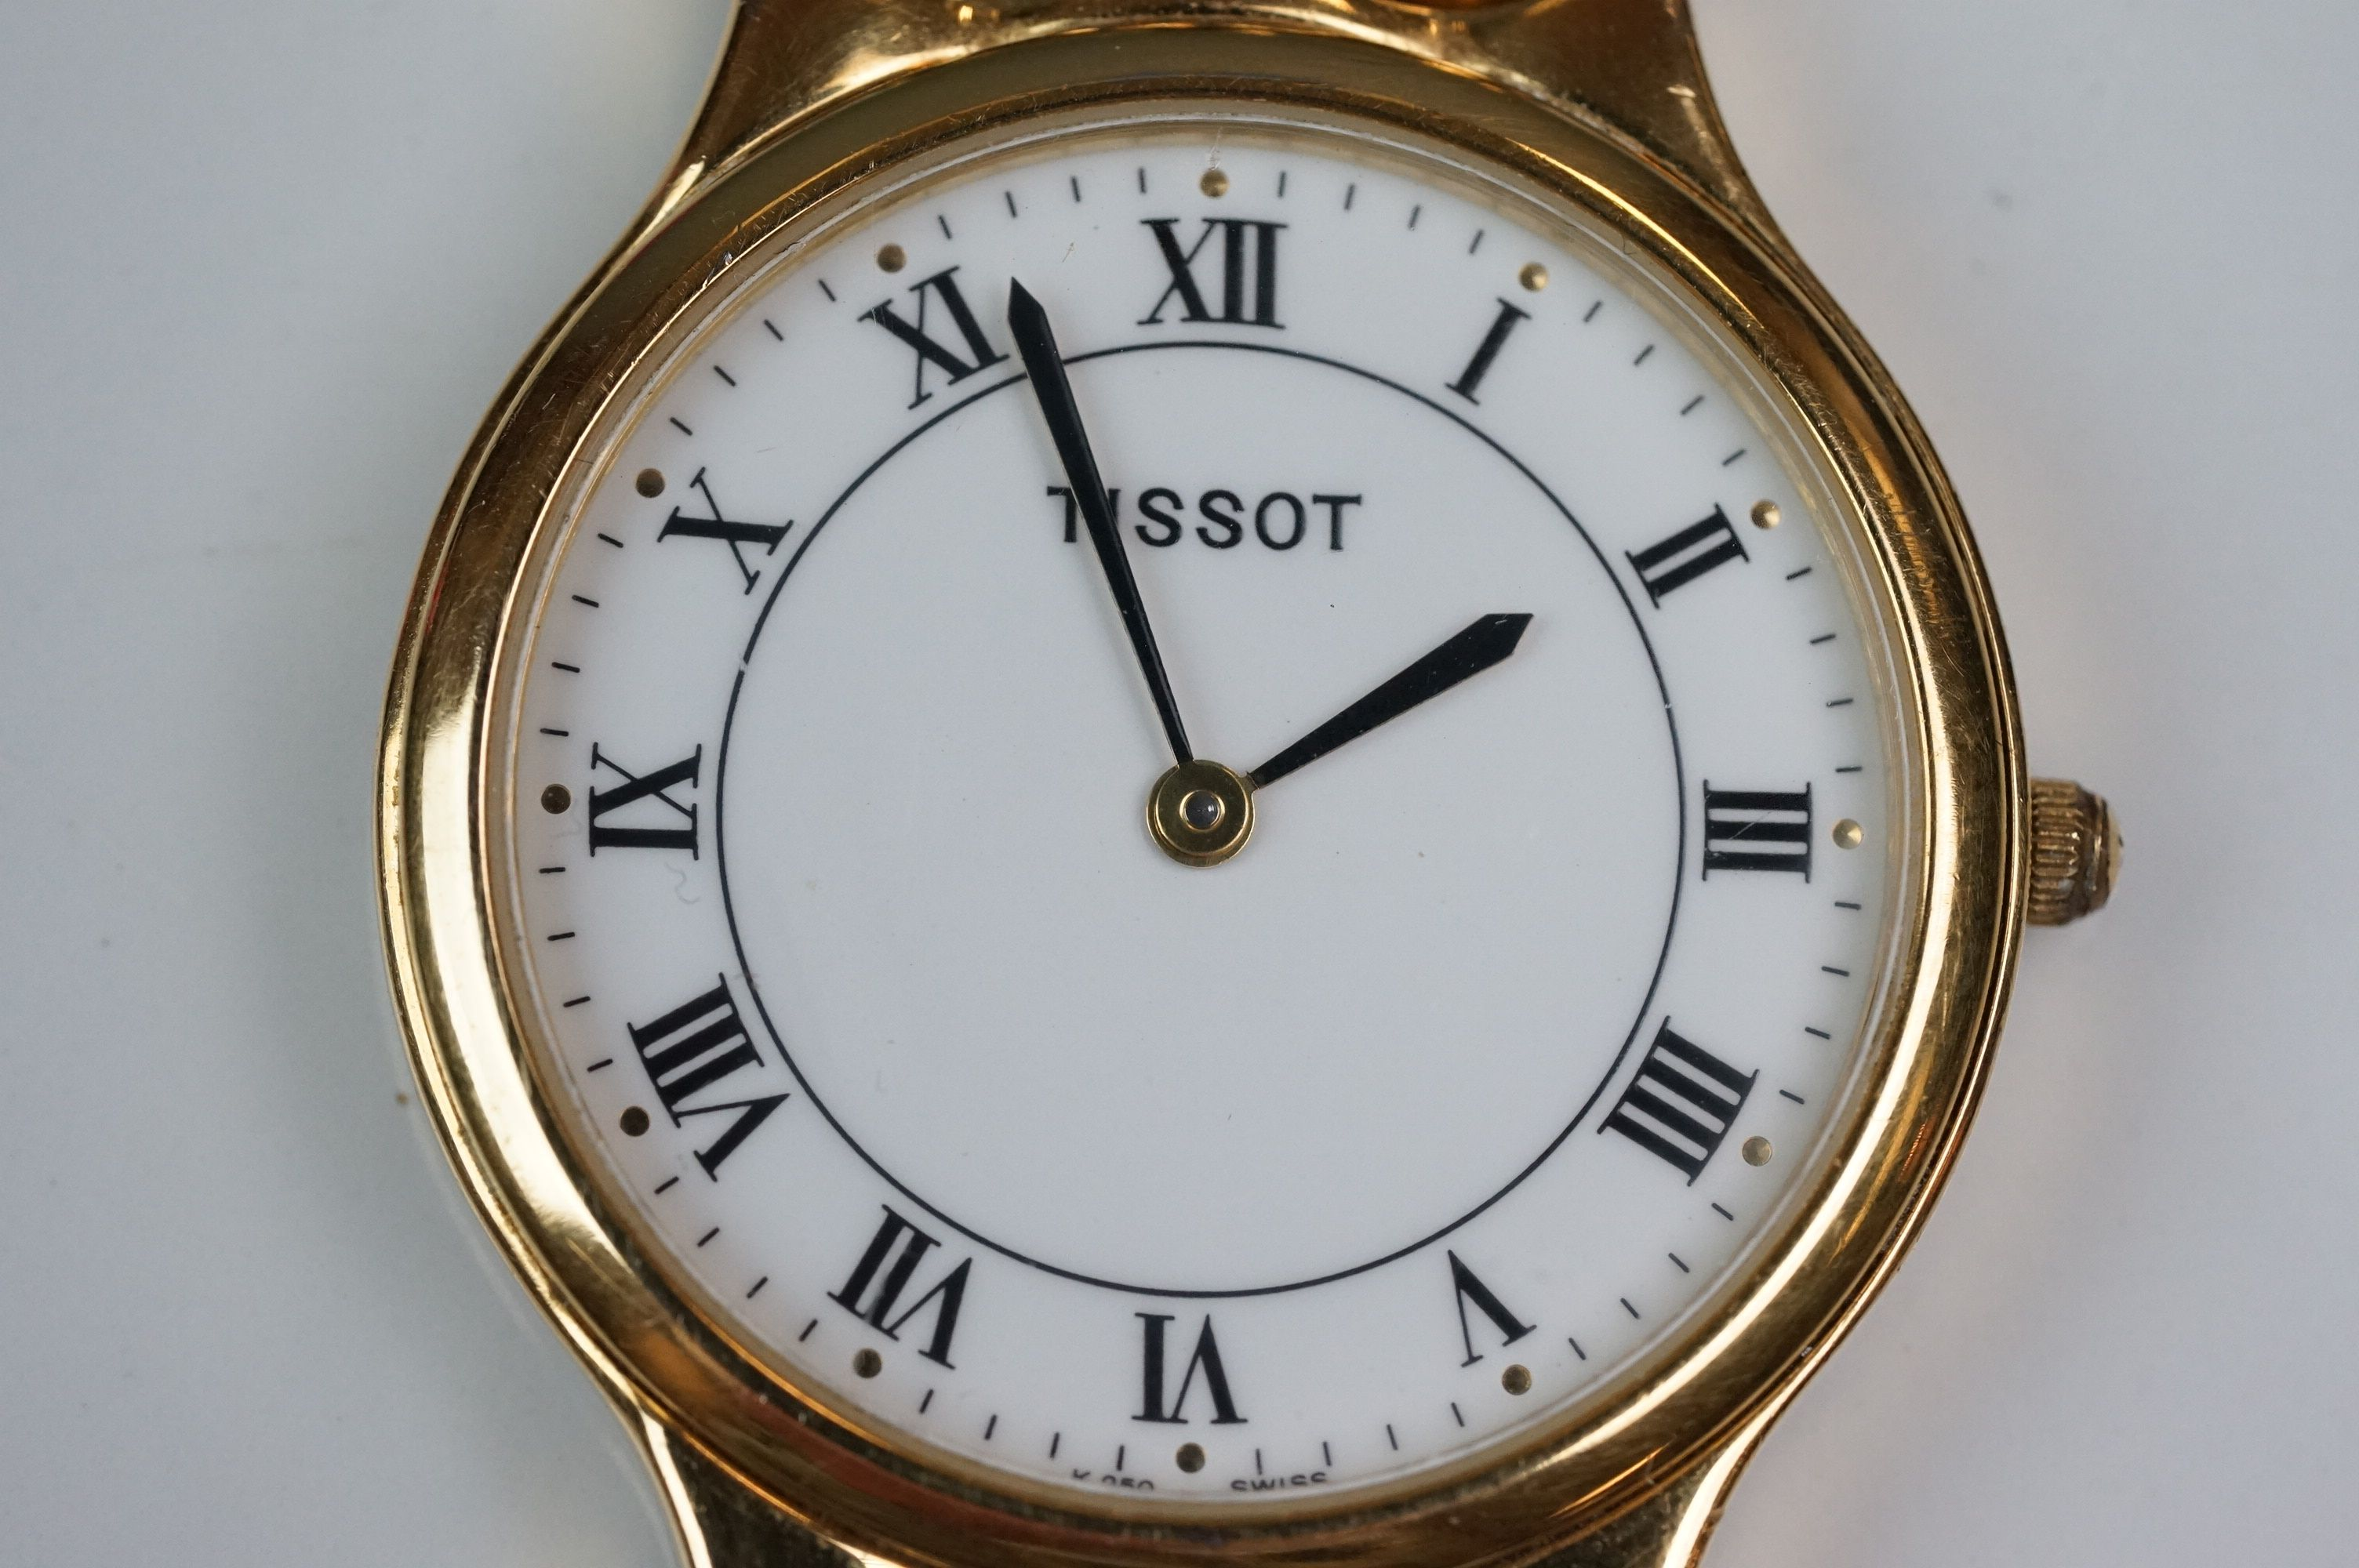 Tissot K250 gold plated dress watch - Image 2 of 10